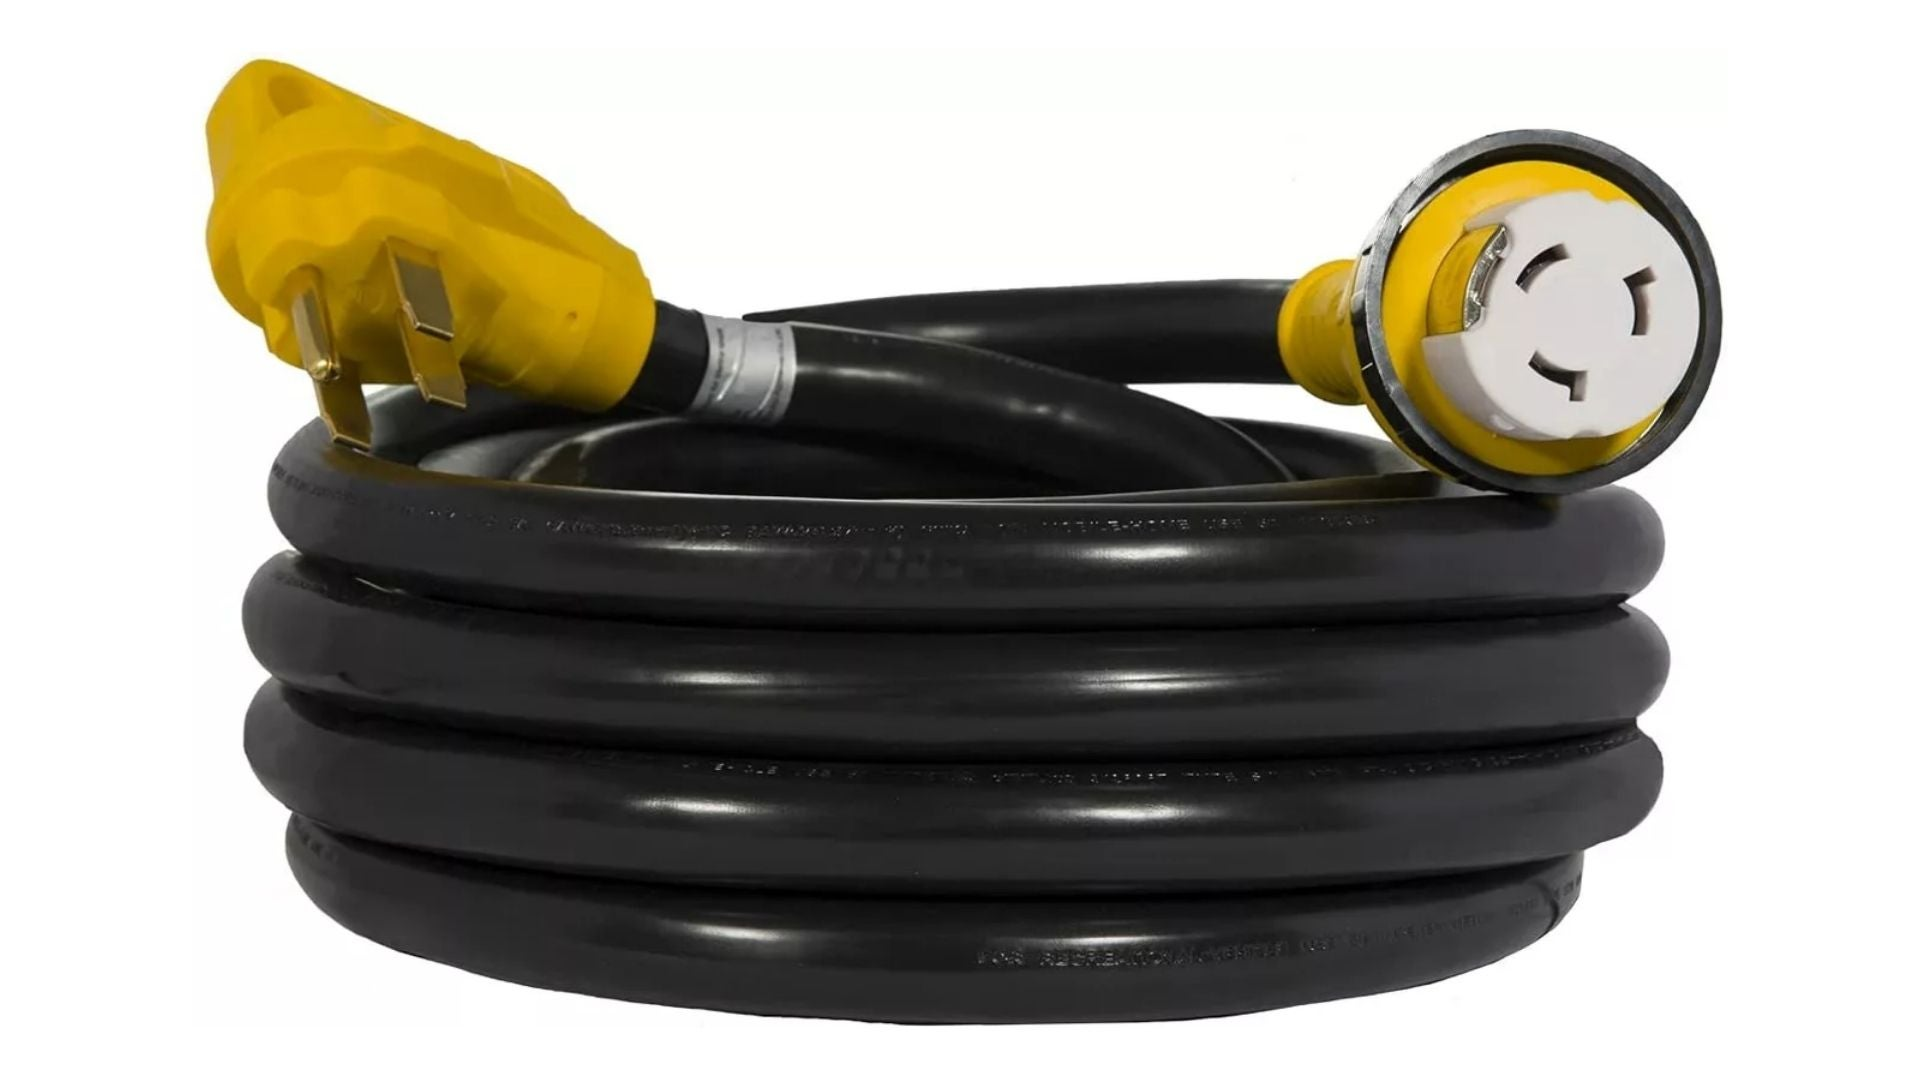 Houseables 50 Amp RV Extension Cord